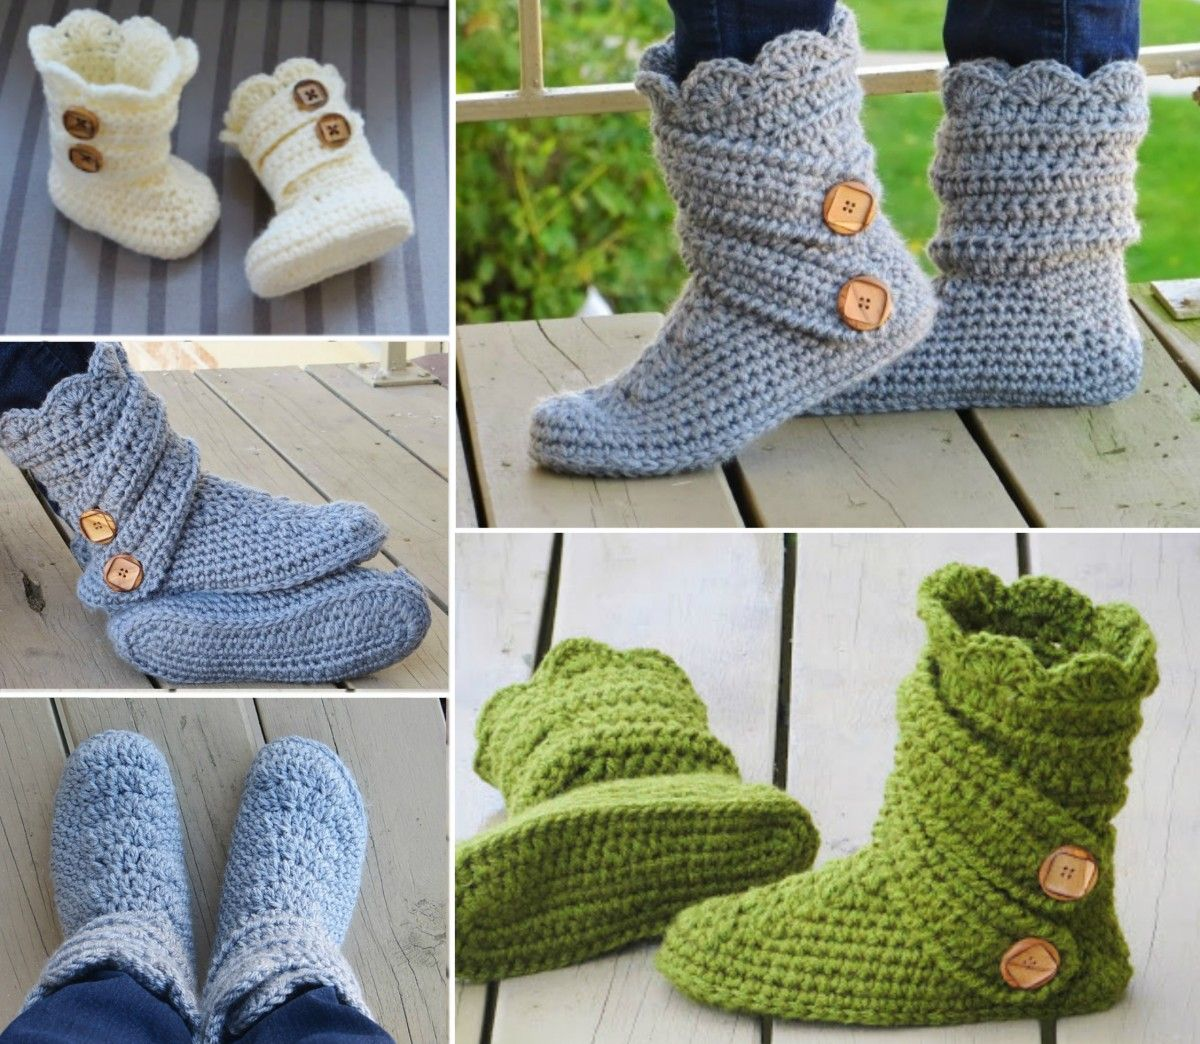 Crochet Slipper Boots Are So Stylish Check Them Out Now | Slipper ...